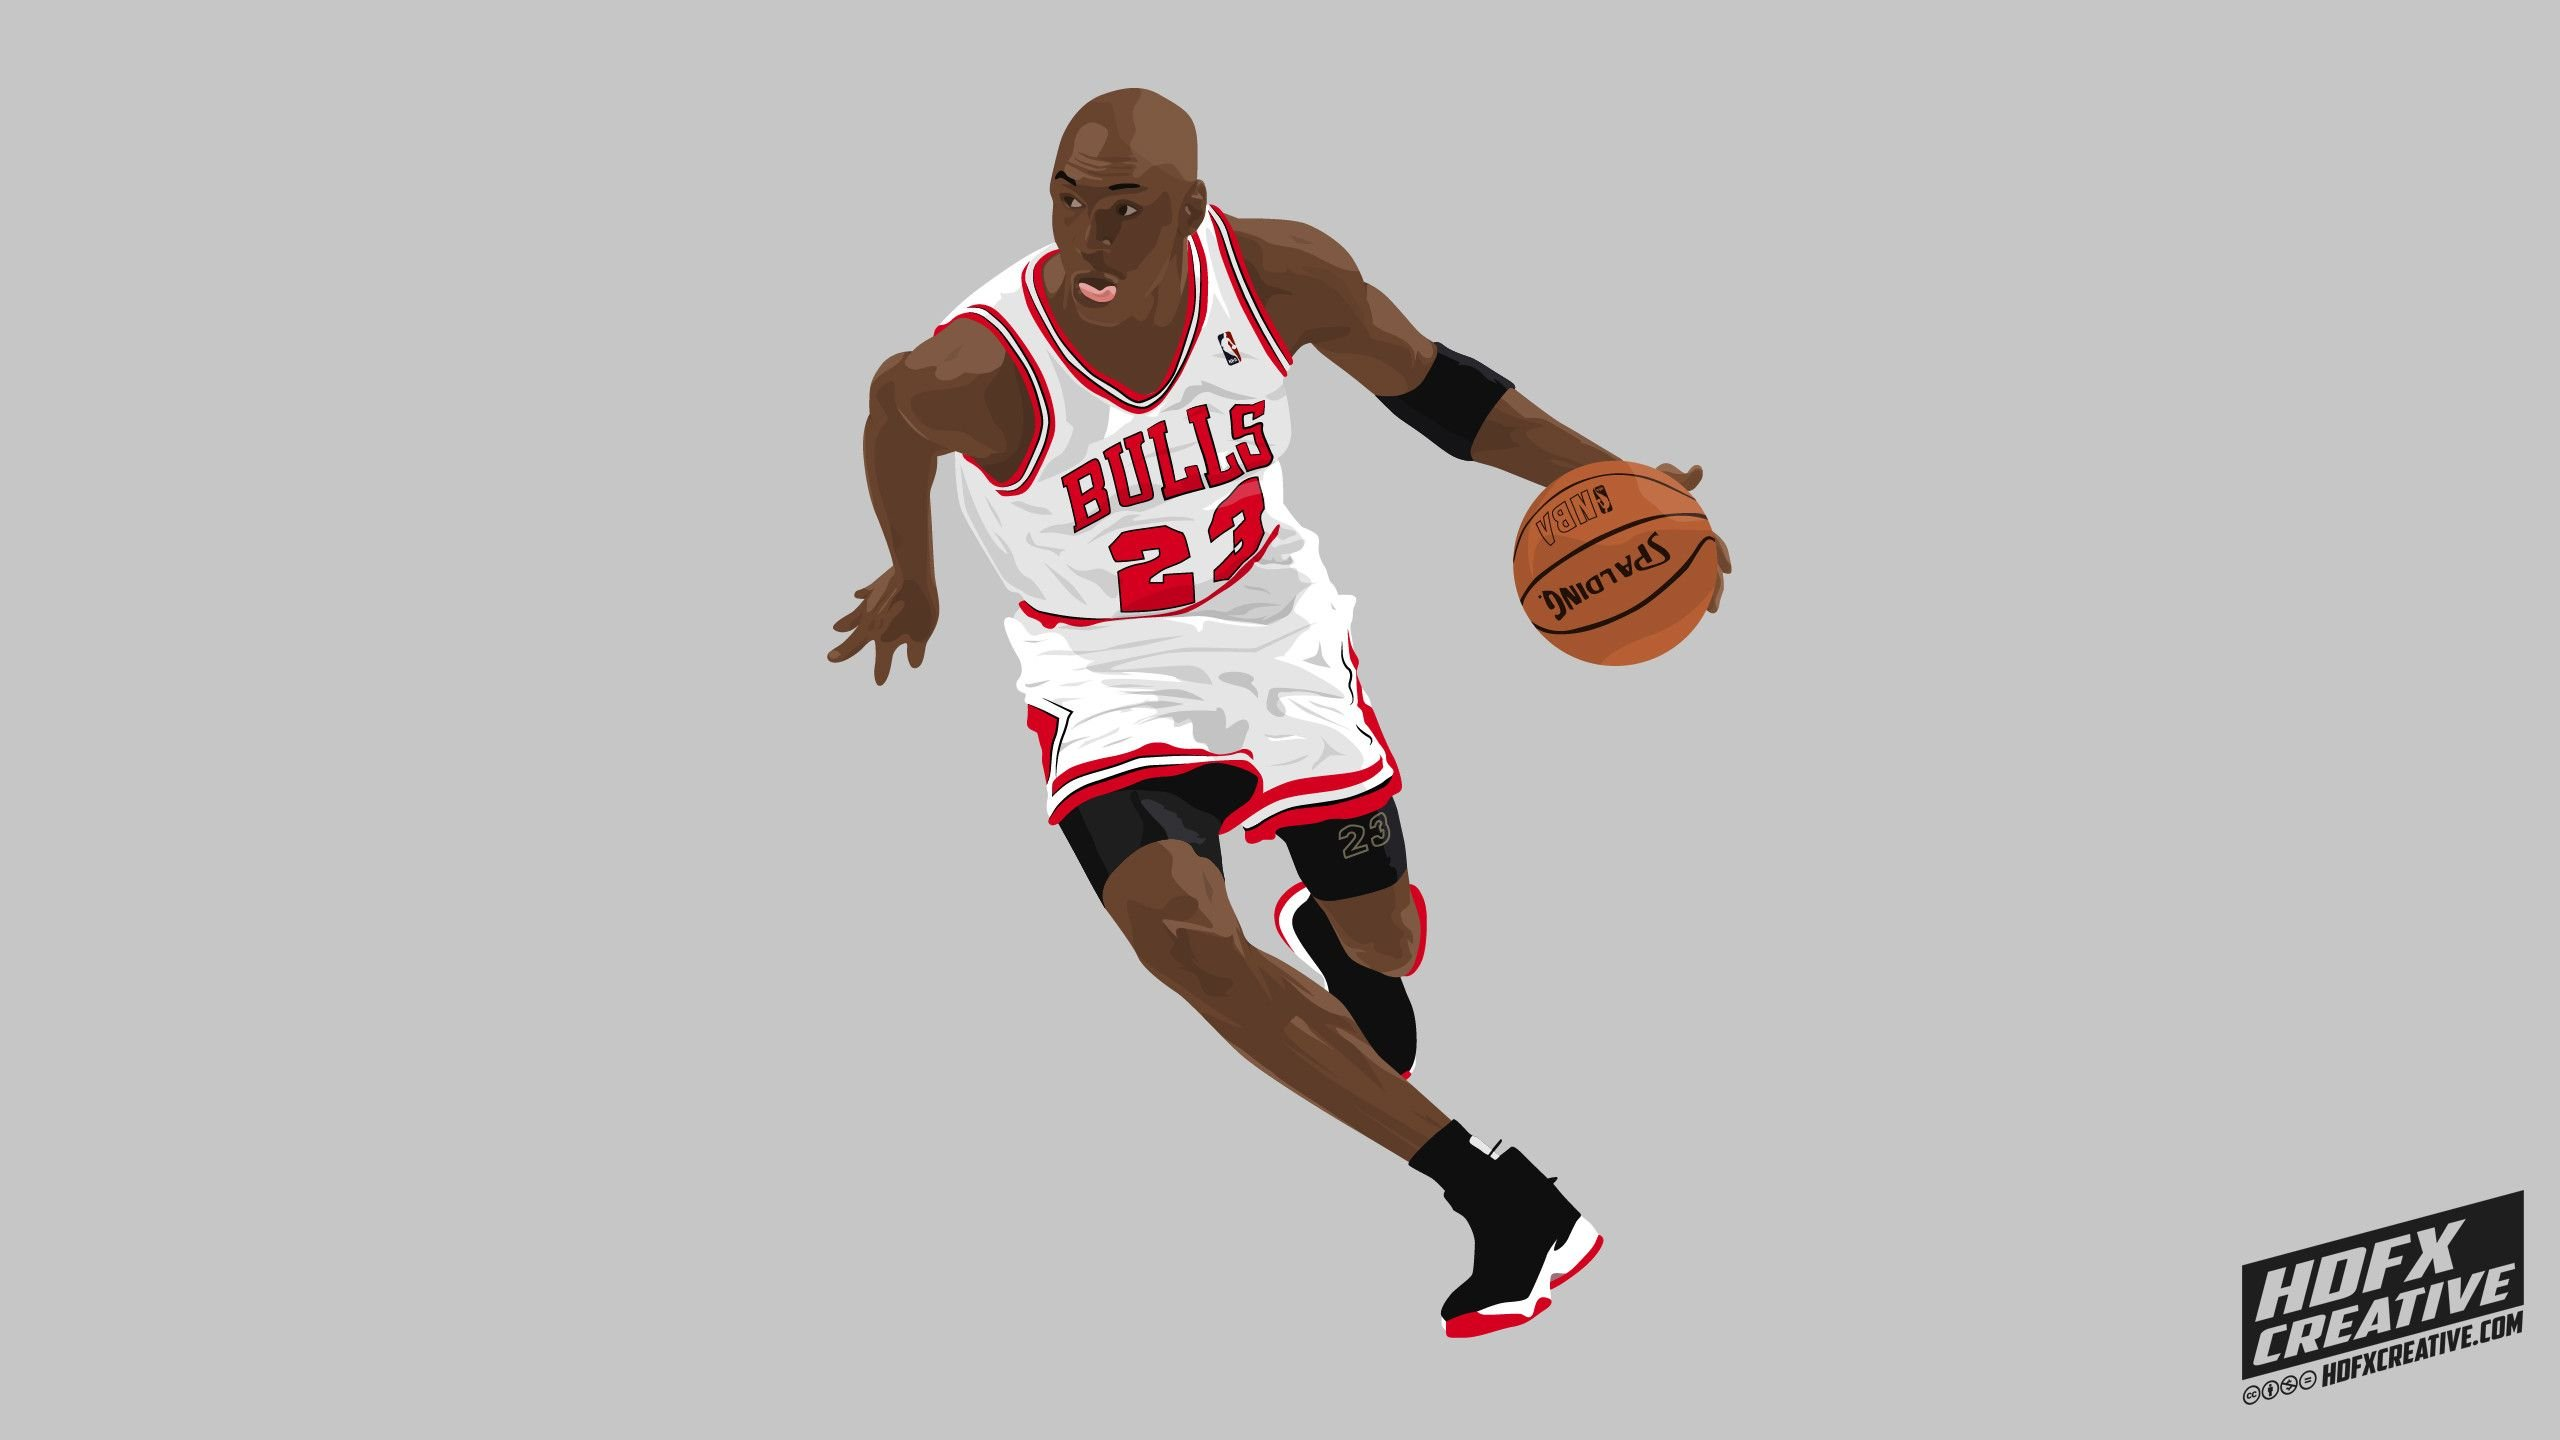 Cartoon Michael Jordan Wallpapers Top Free Cartoon Michael Jordan Backgrounds Wallpaperaccess